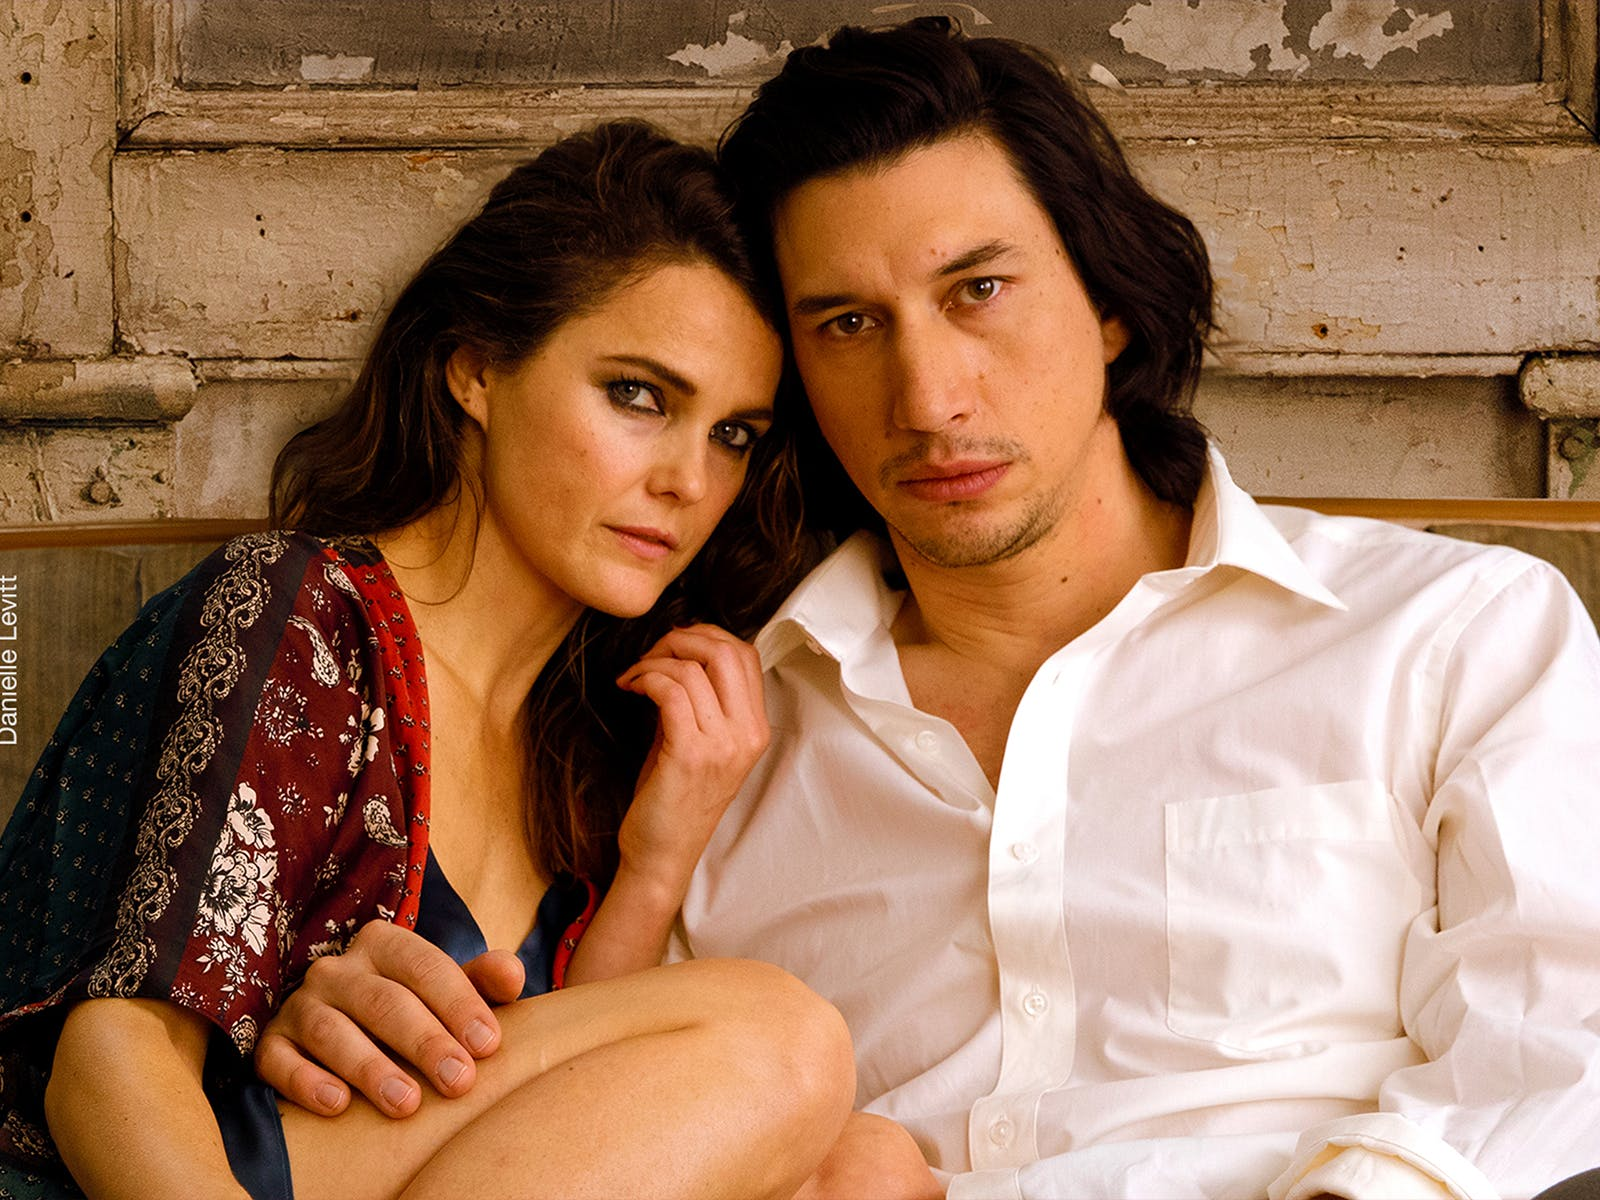 Keri Russell and Adam Driver